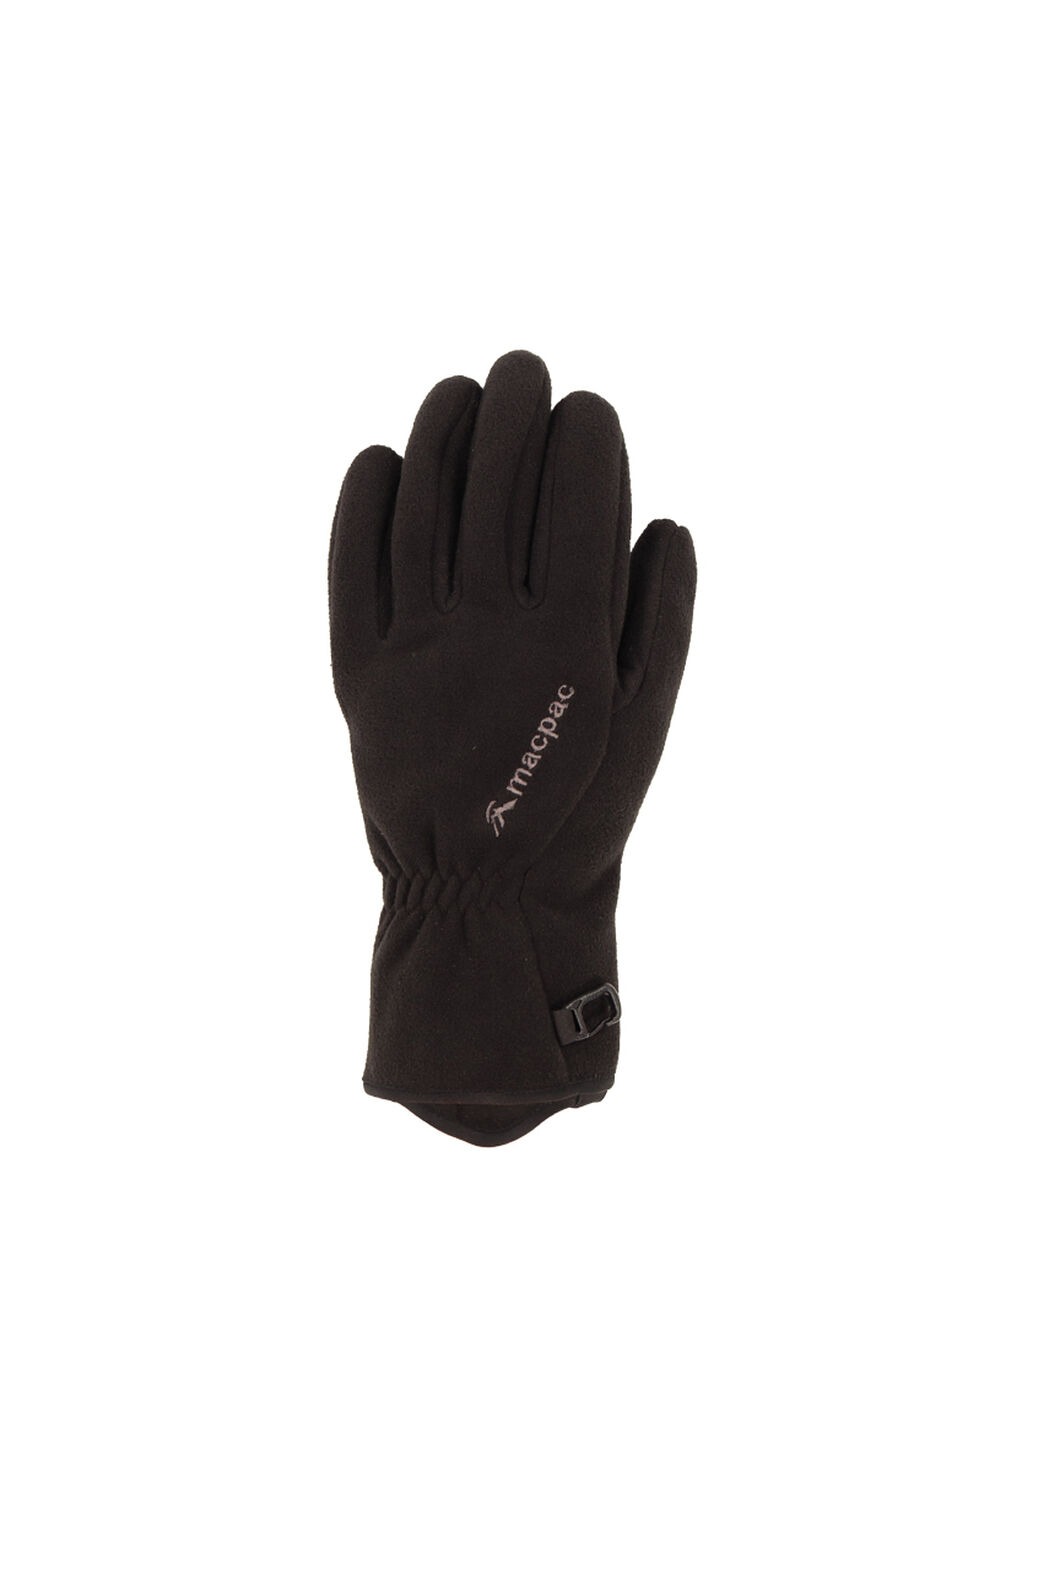 Macpac Flurry Gloves, Black, hi-res